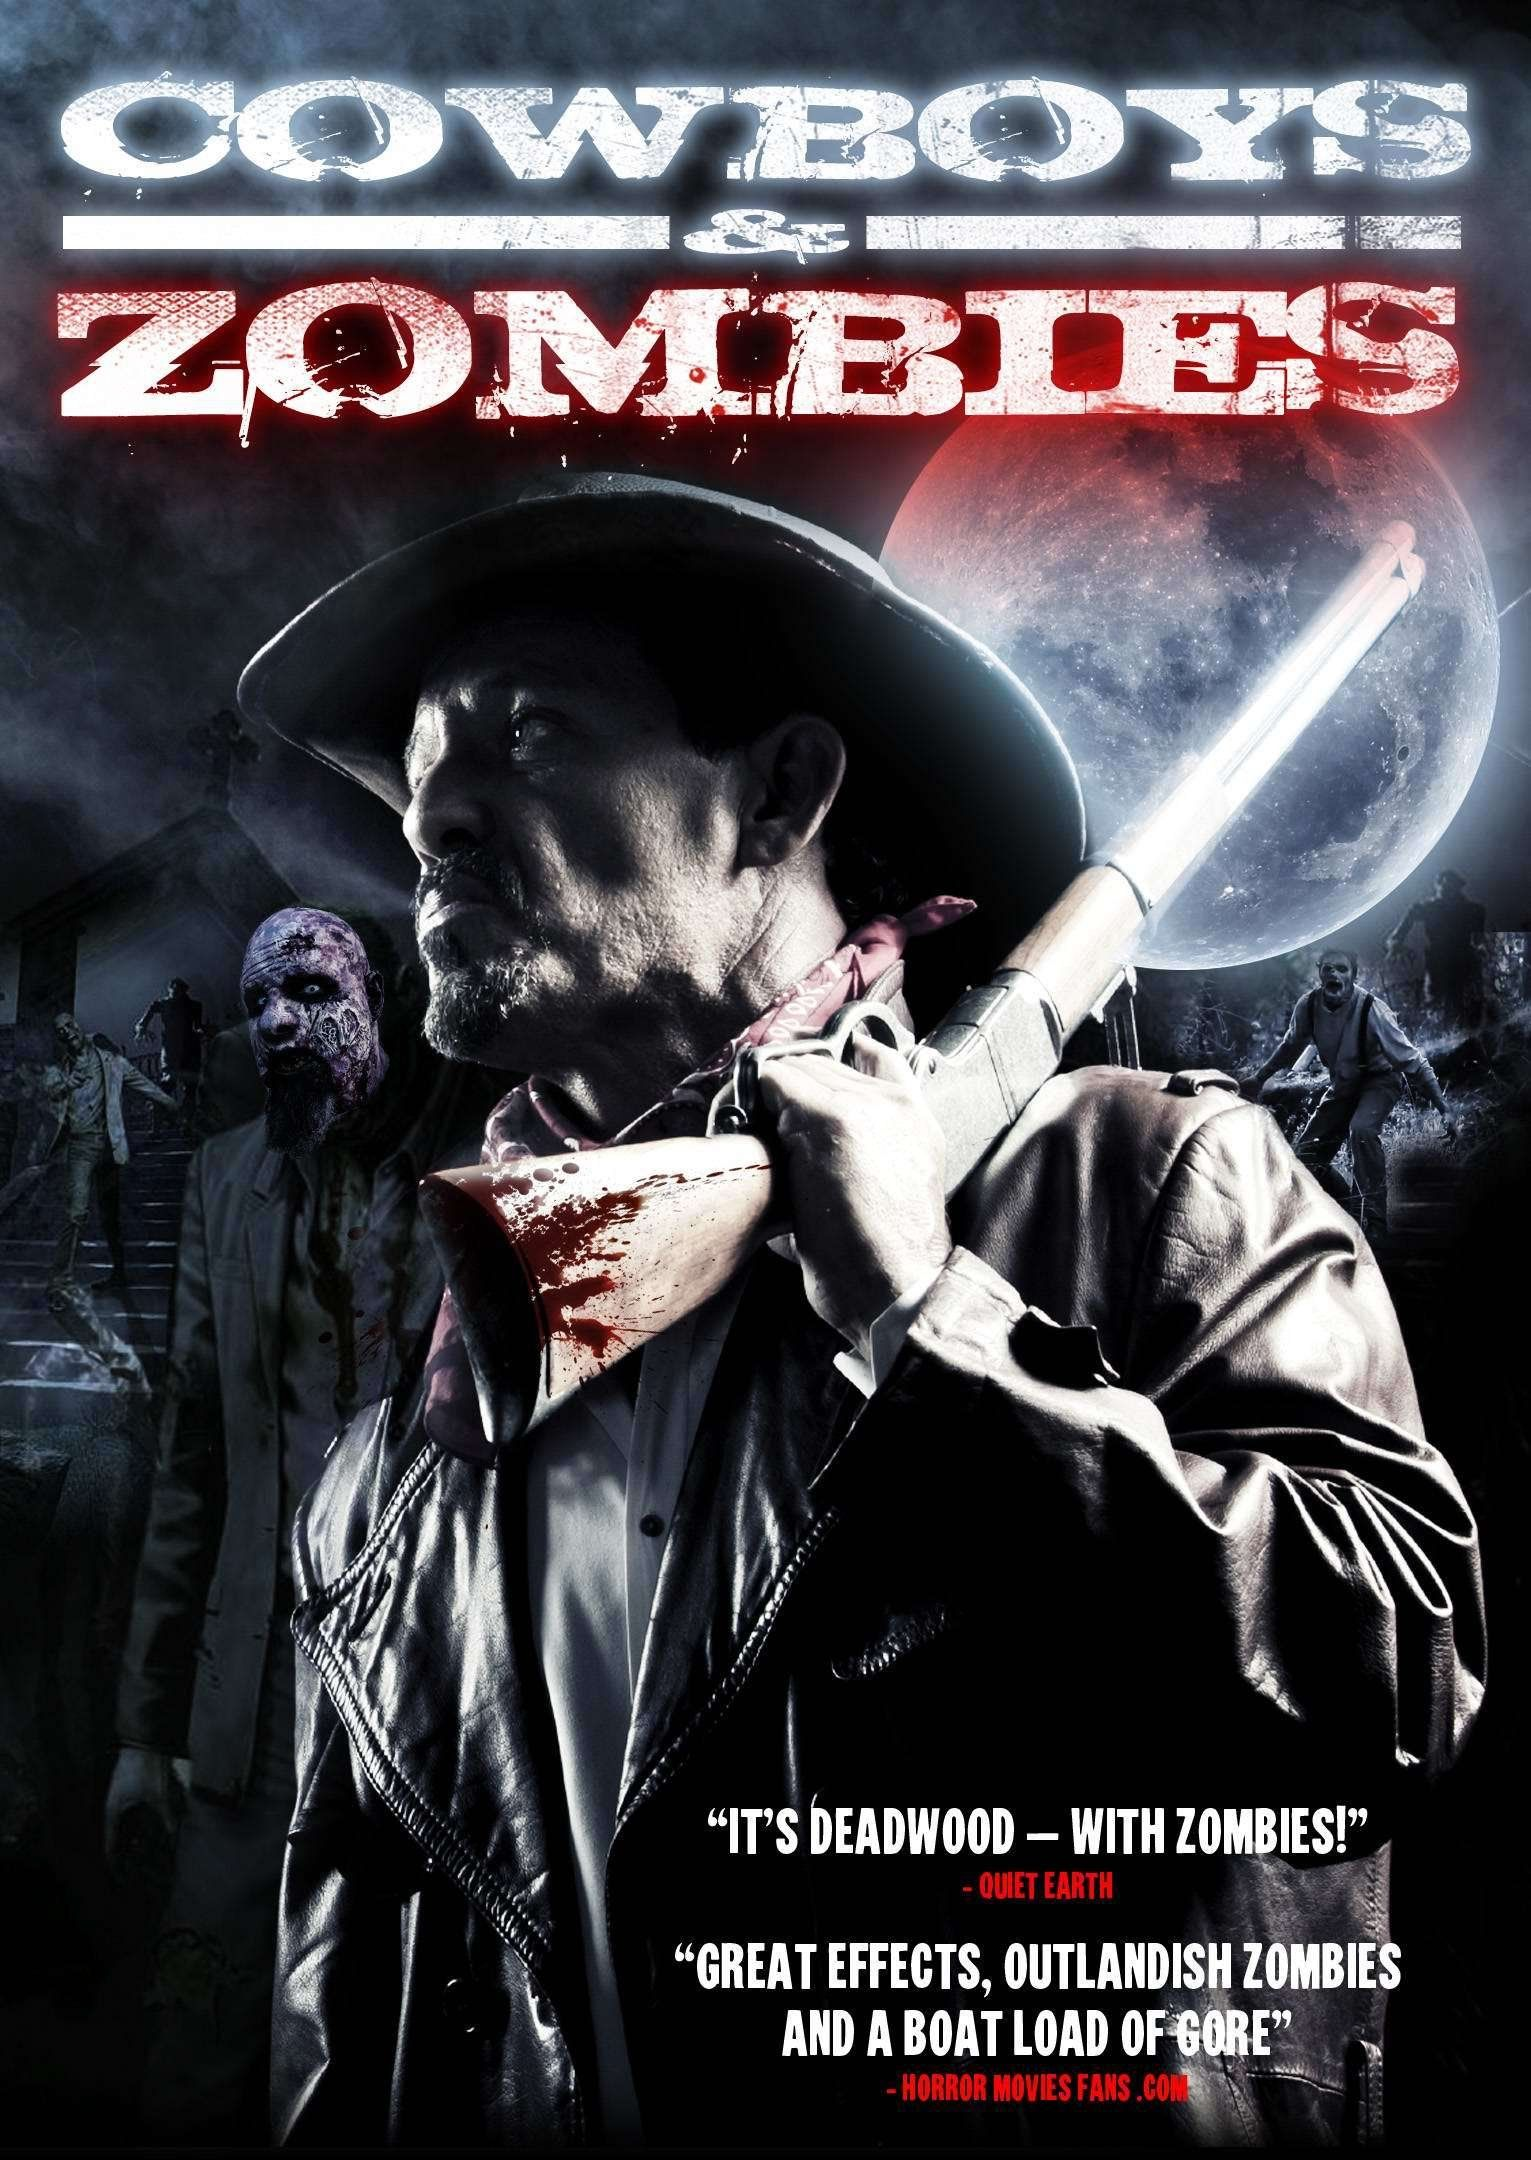 Cowboys & Zombies (a.k.a. The Dead and the Damned) (2010